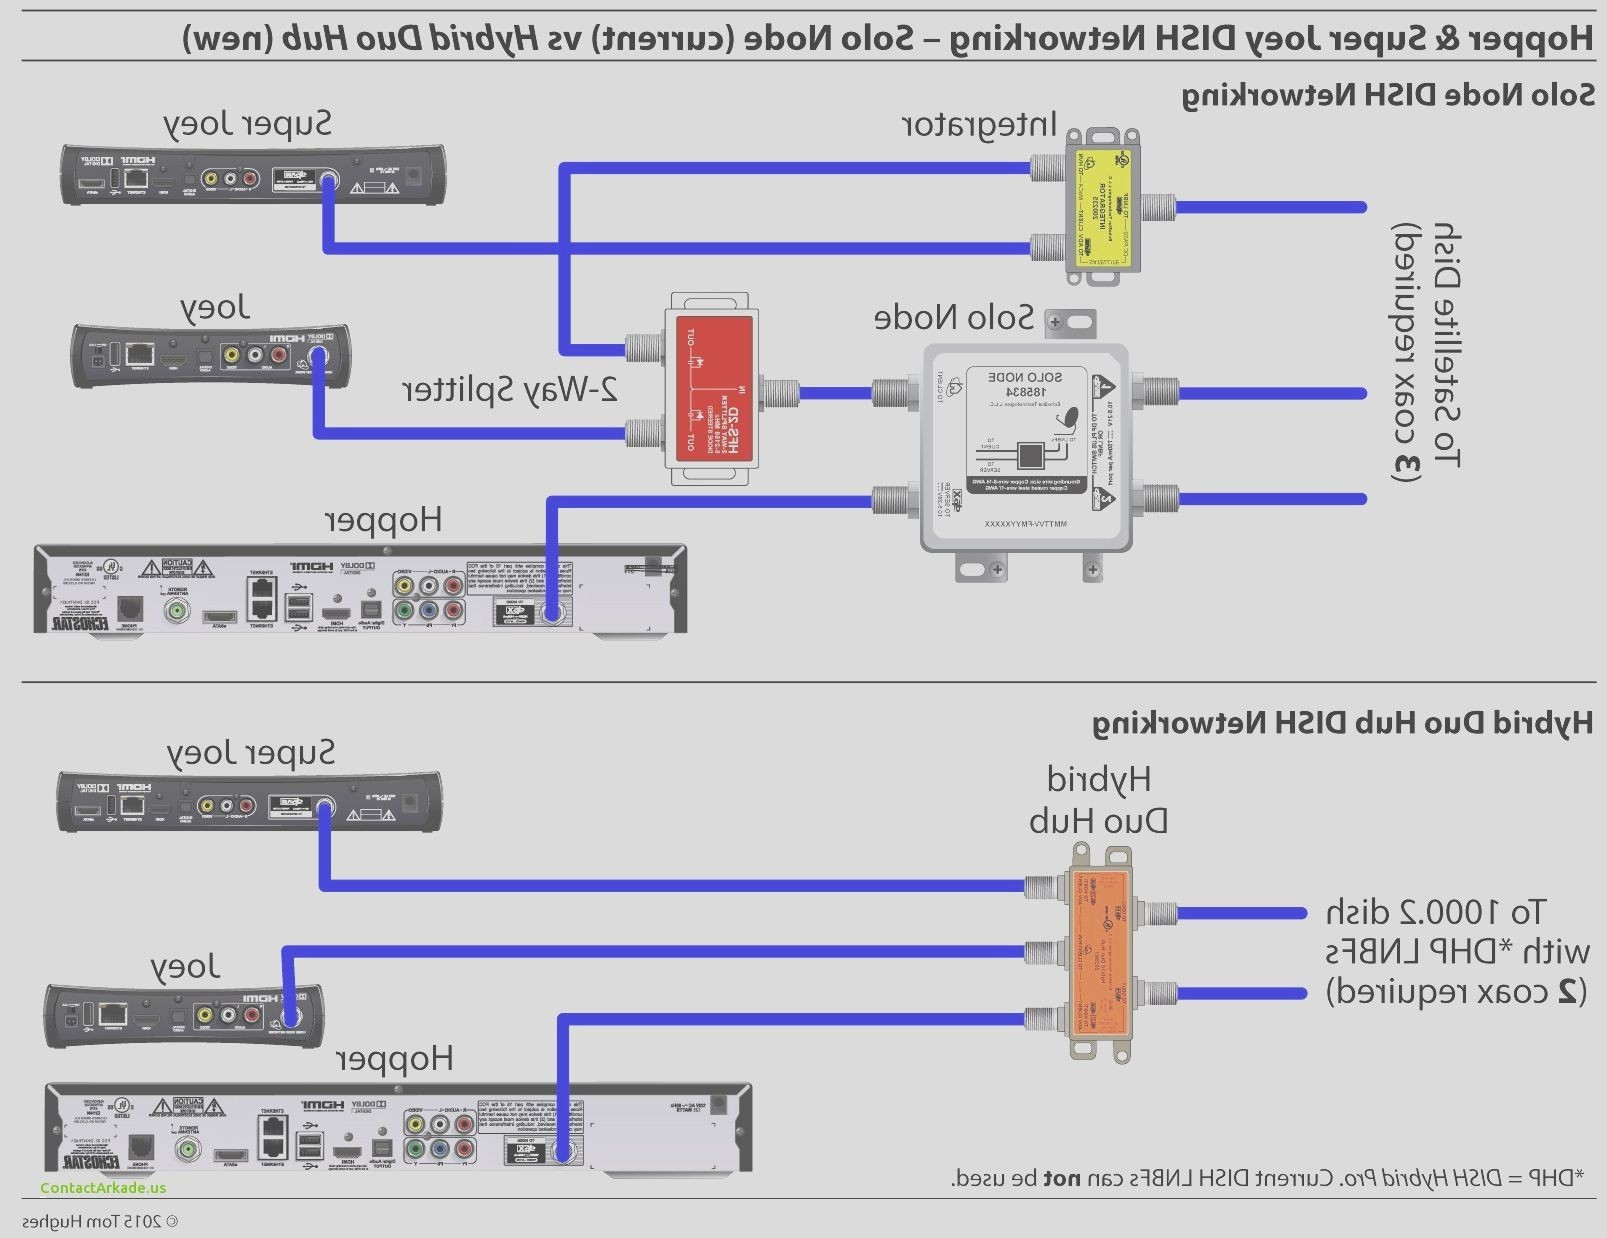 ethernet cable wiring diagram cat5e Collection-Wiring Diagram For A Cat5 Cable New Cat5e Wire Diagram New Ethernet Cable Wiring Diagram New Od Wiring 7-i